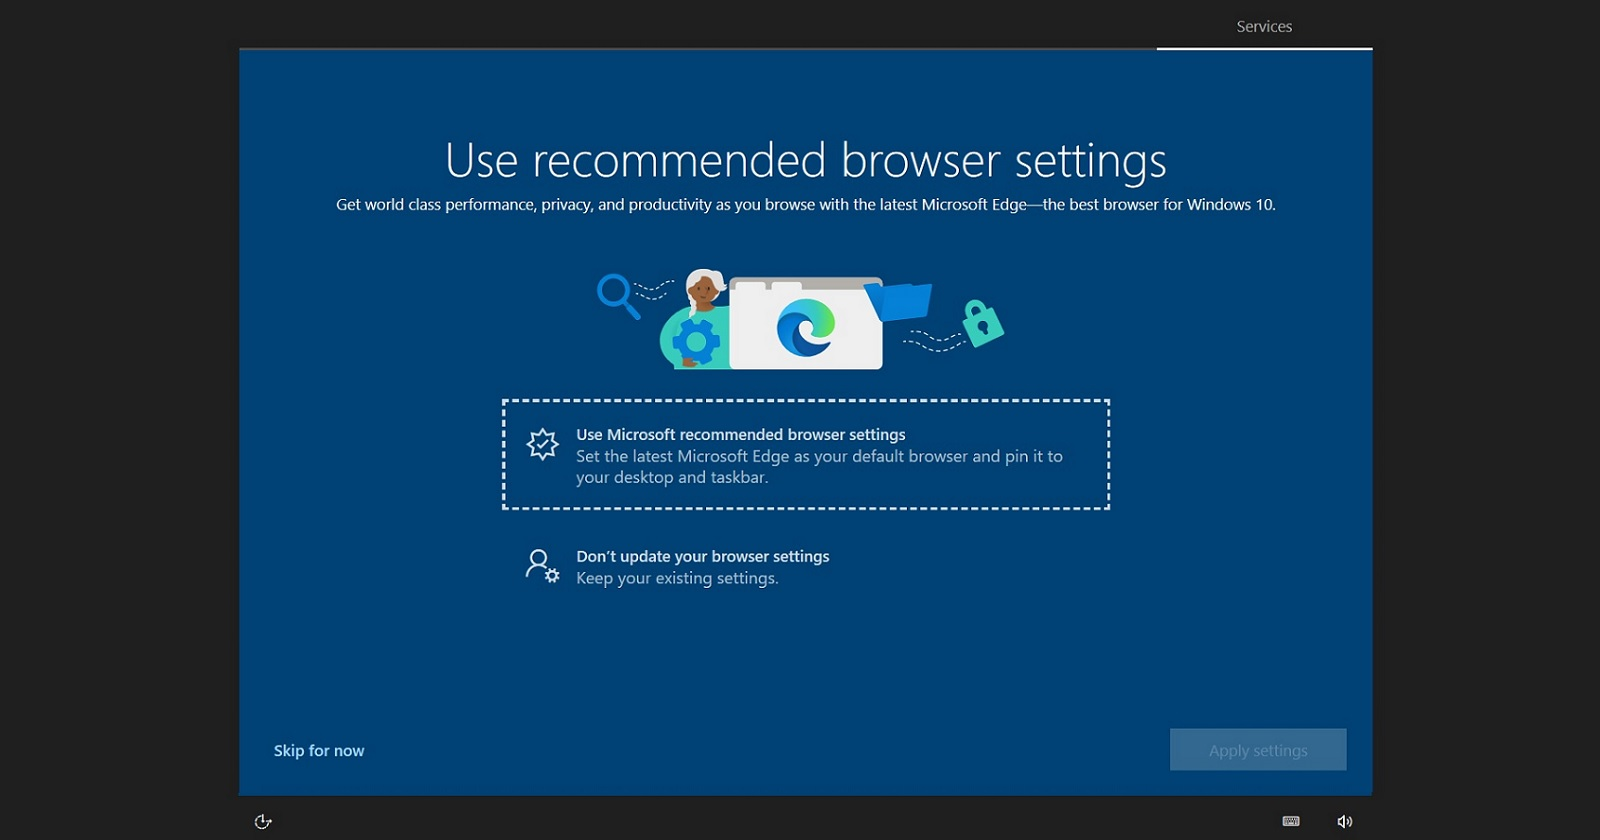 Windows 10 is now nagging users with full screen Microsoft Edge ads